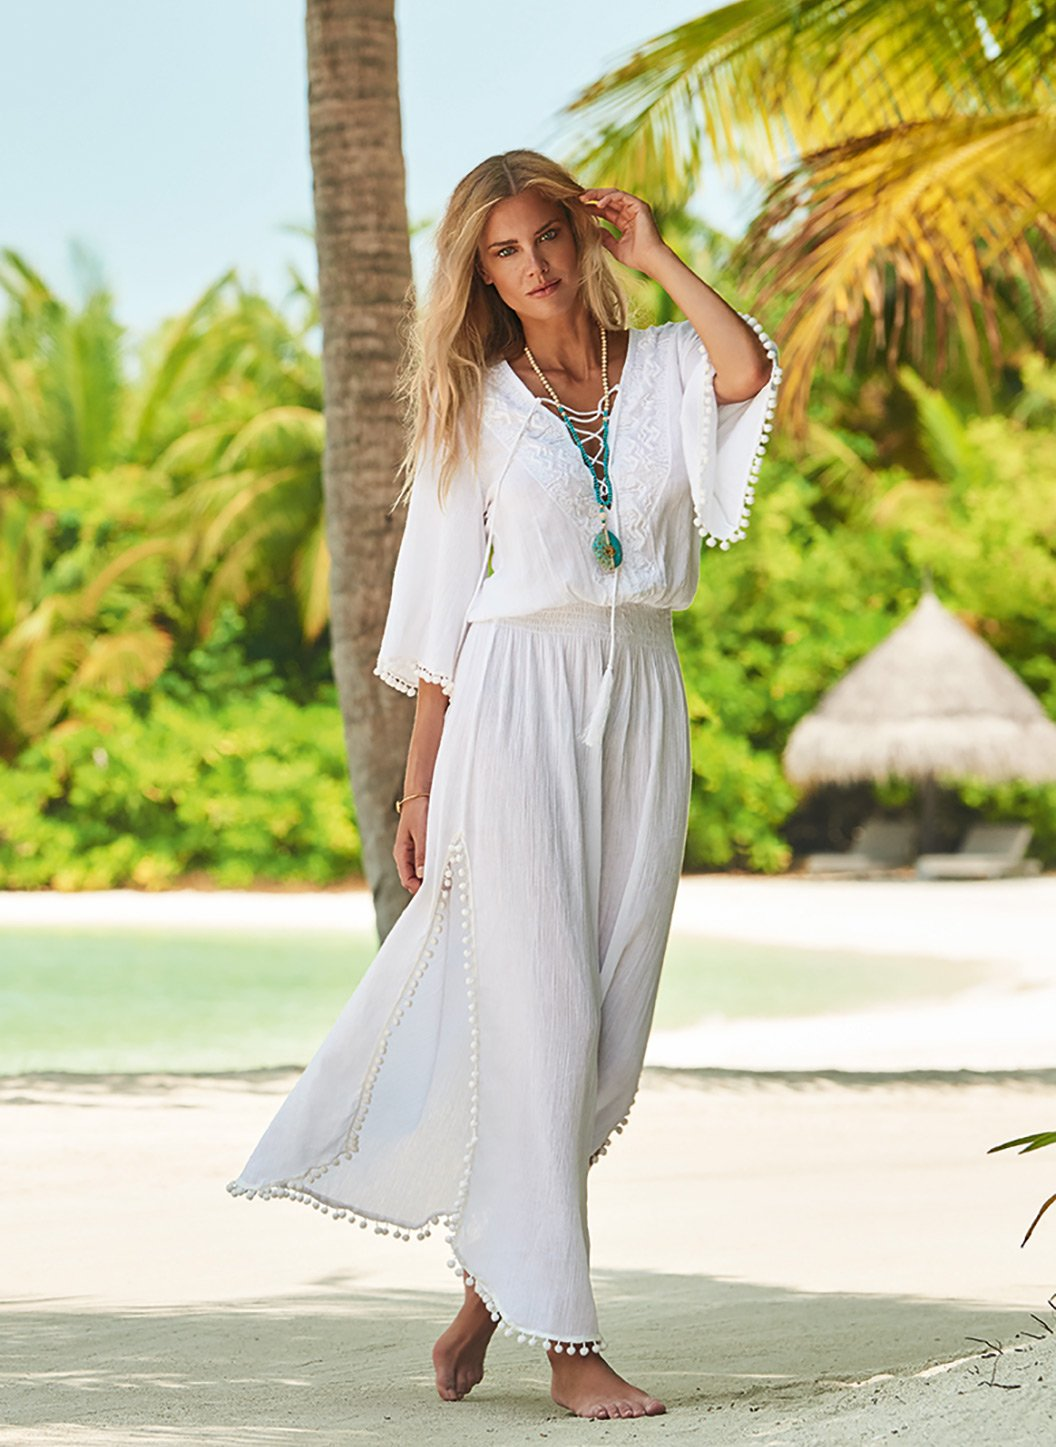 ff15702f13f6 kari white laceup embroidered maxi dress lifestyle 2019